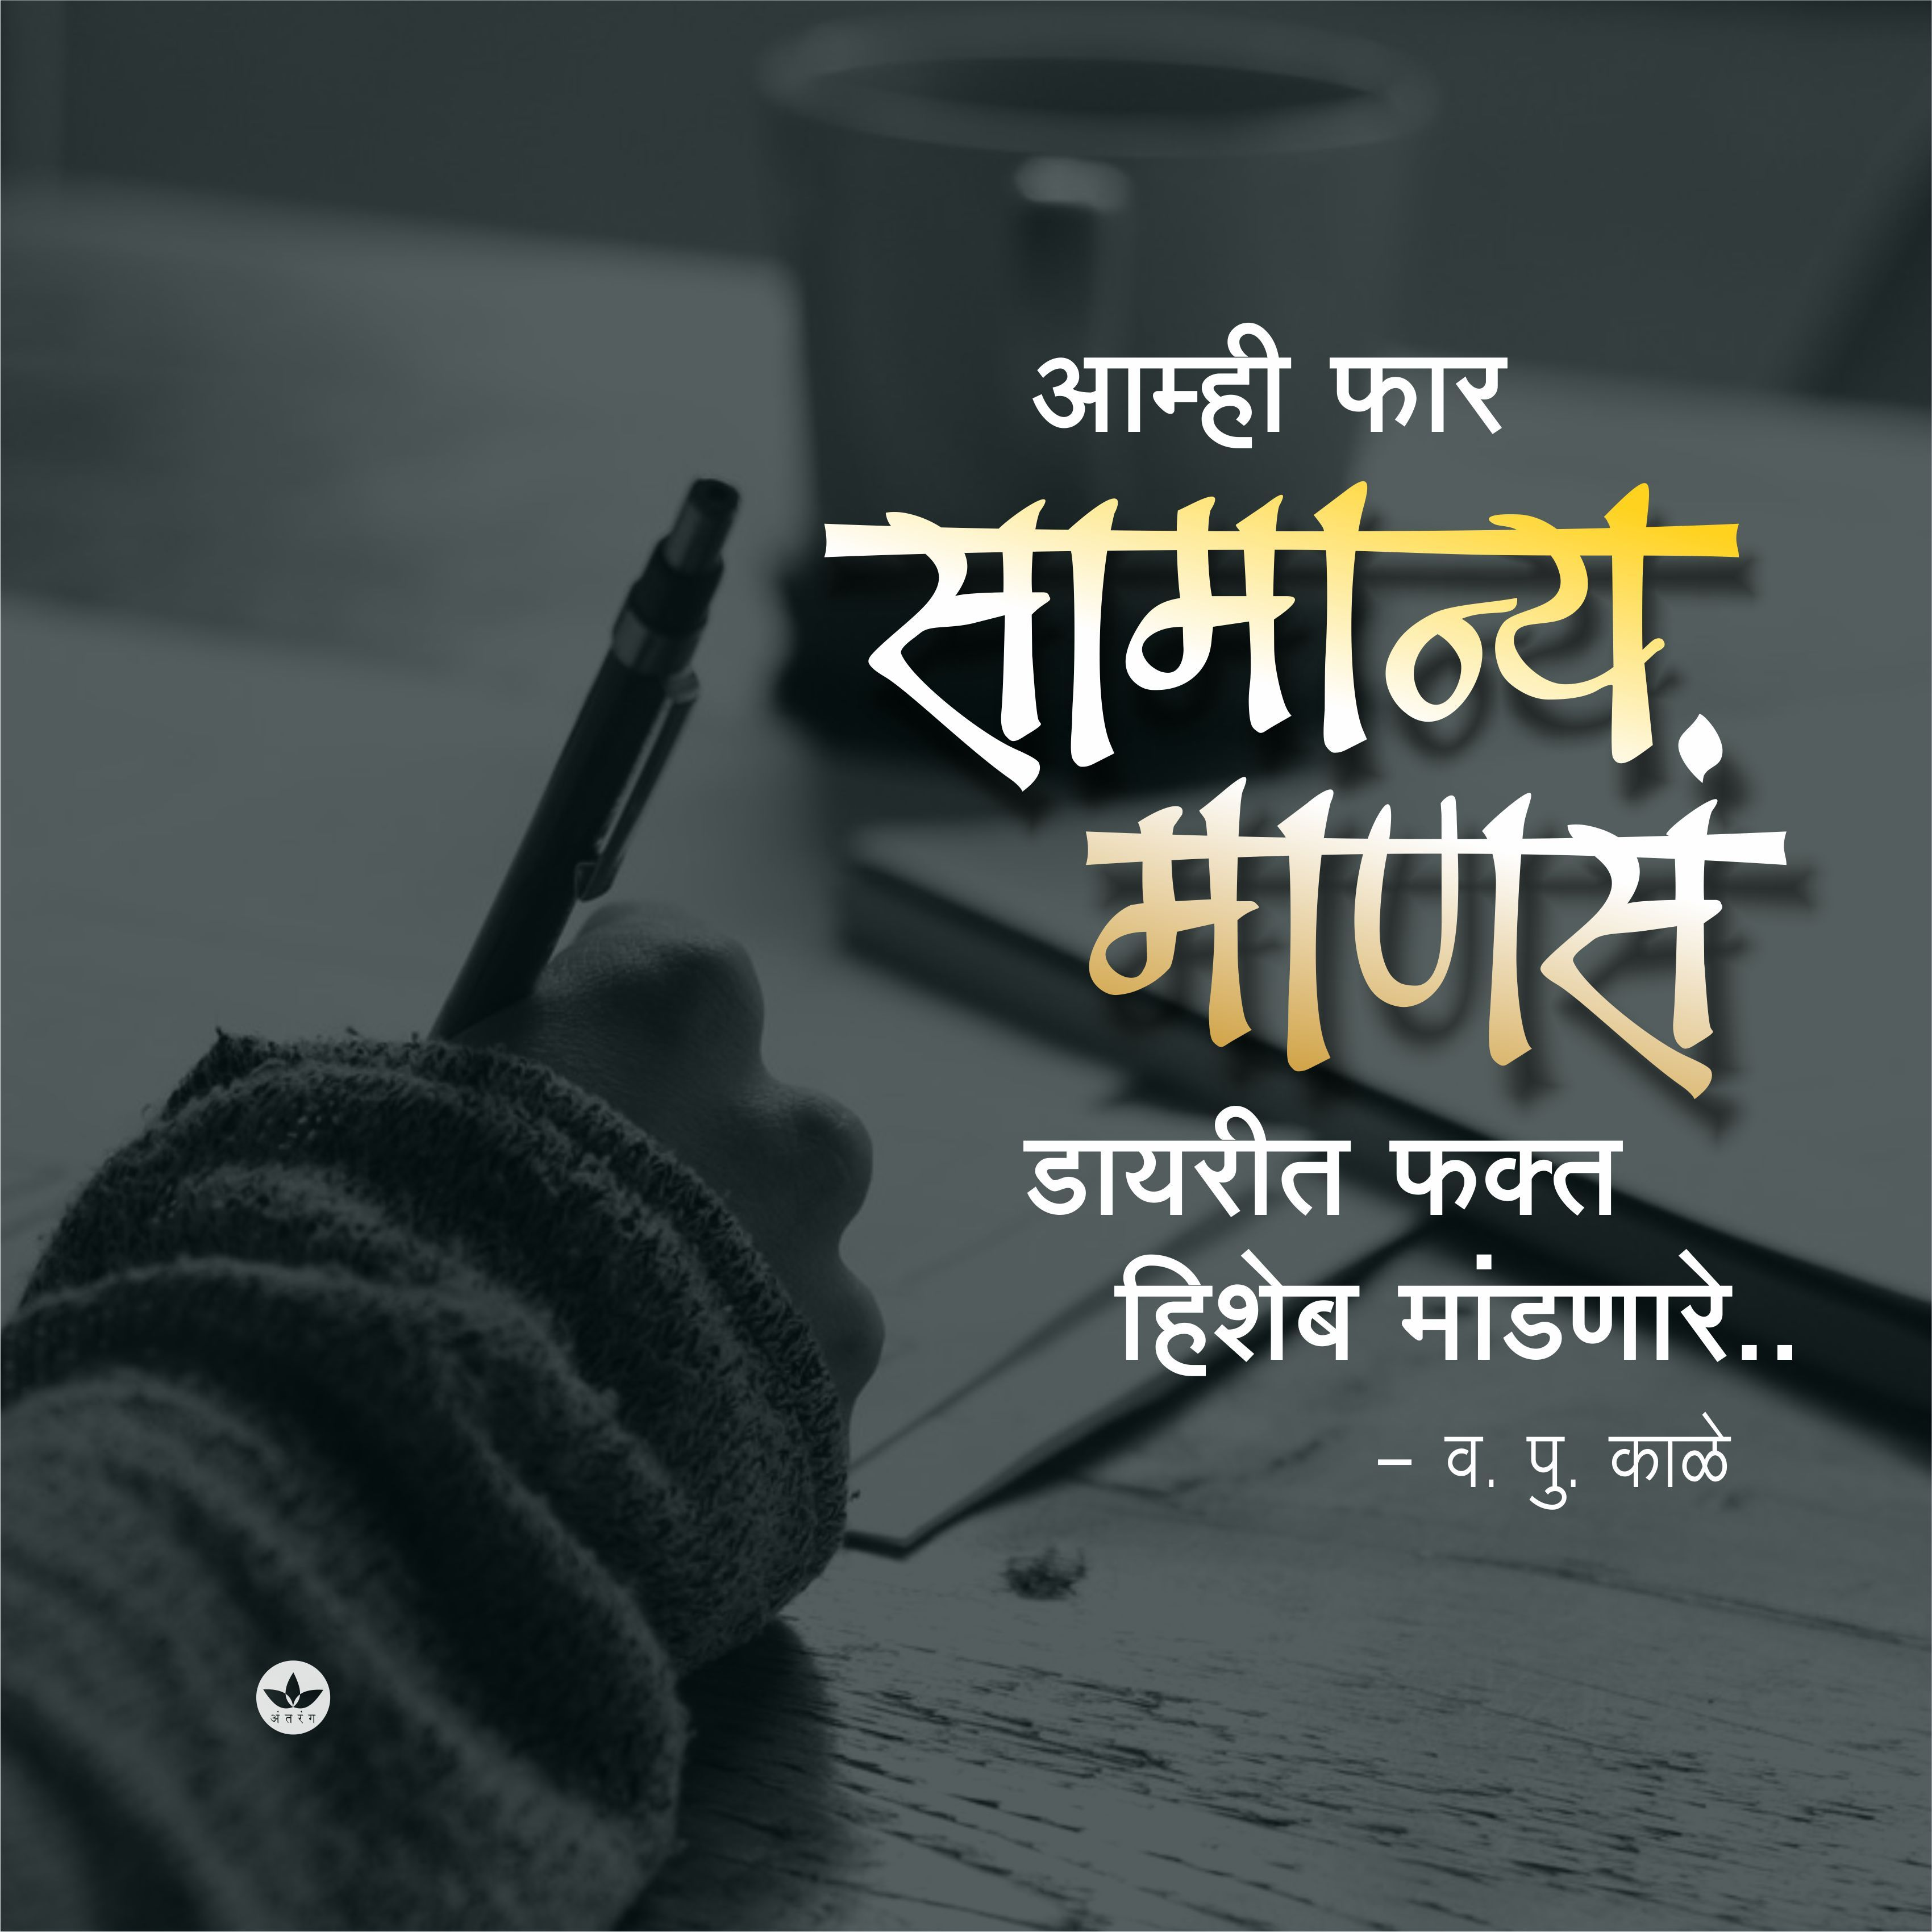 Catch Me For More Like This On Insta Iampratik 26 Or 917385118007 Marathi Quotes Calligraphy Quotes Motivatinal Quotes